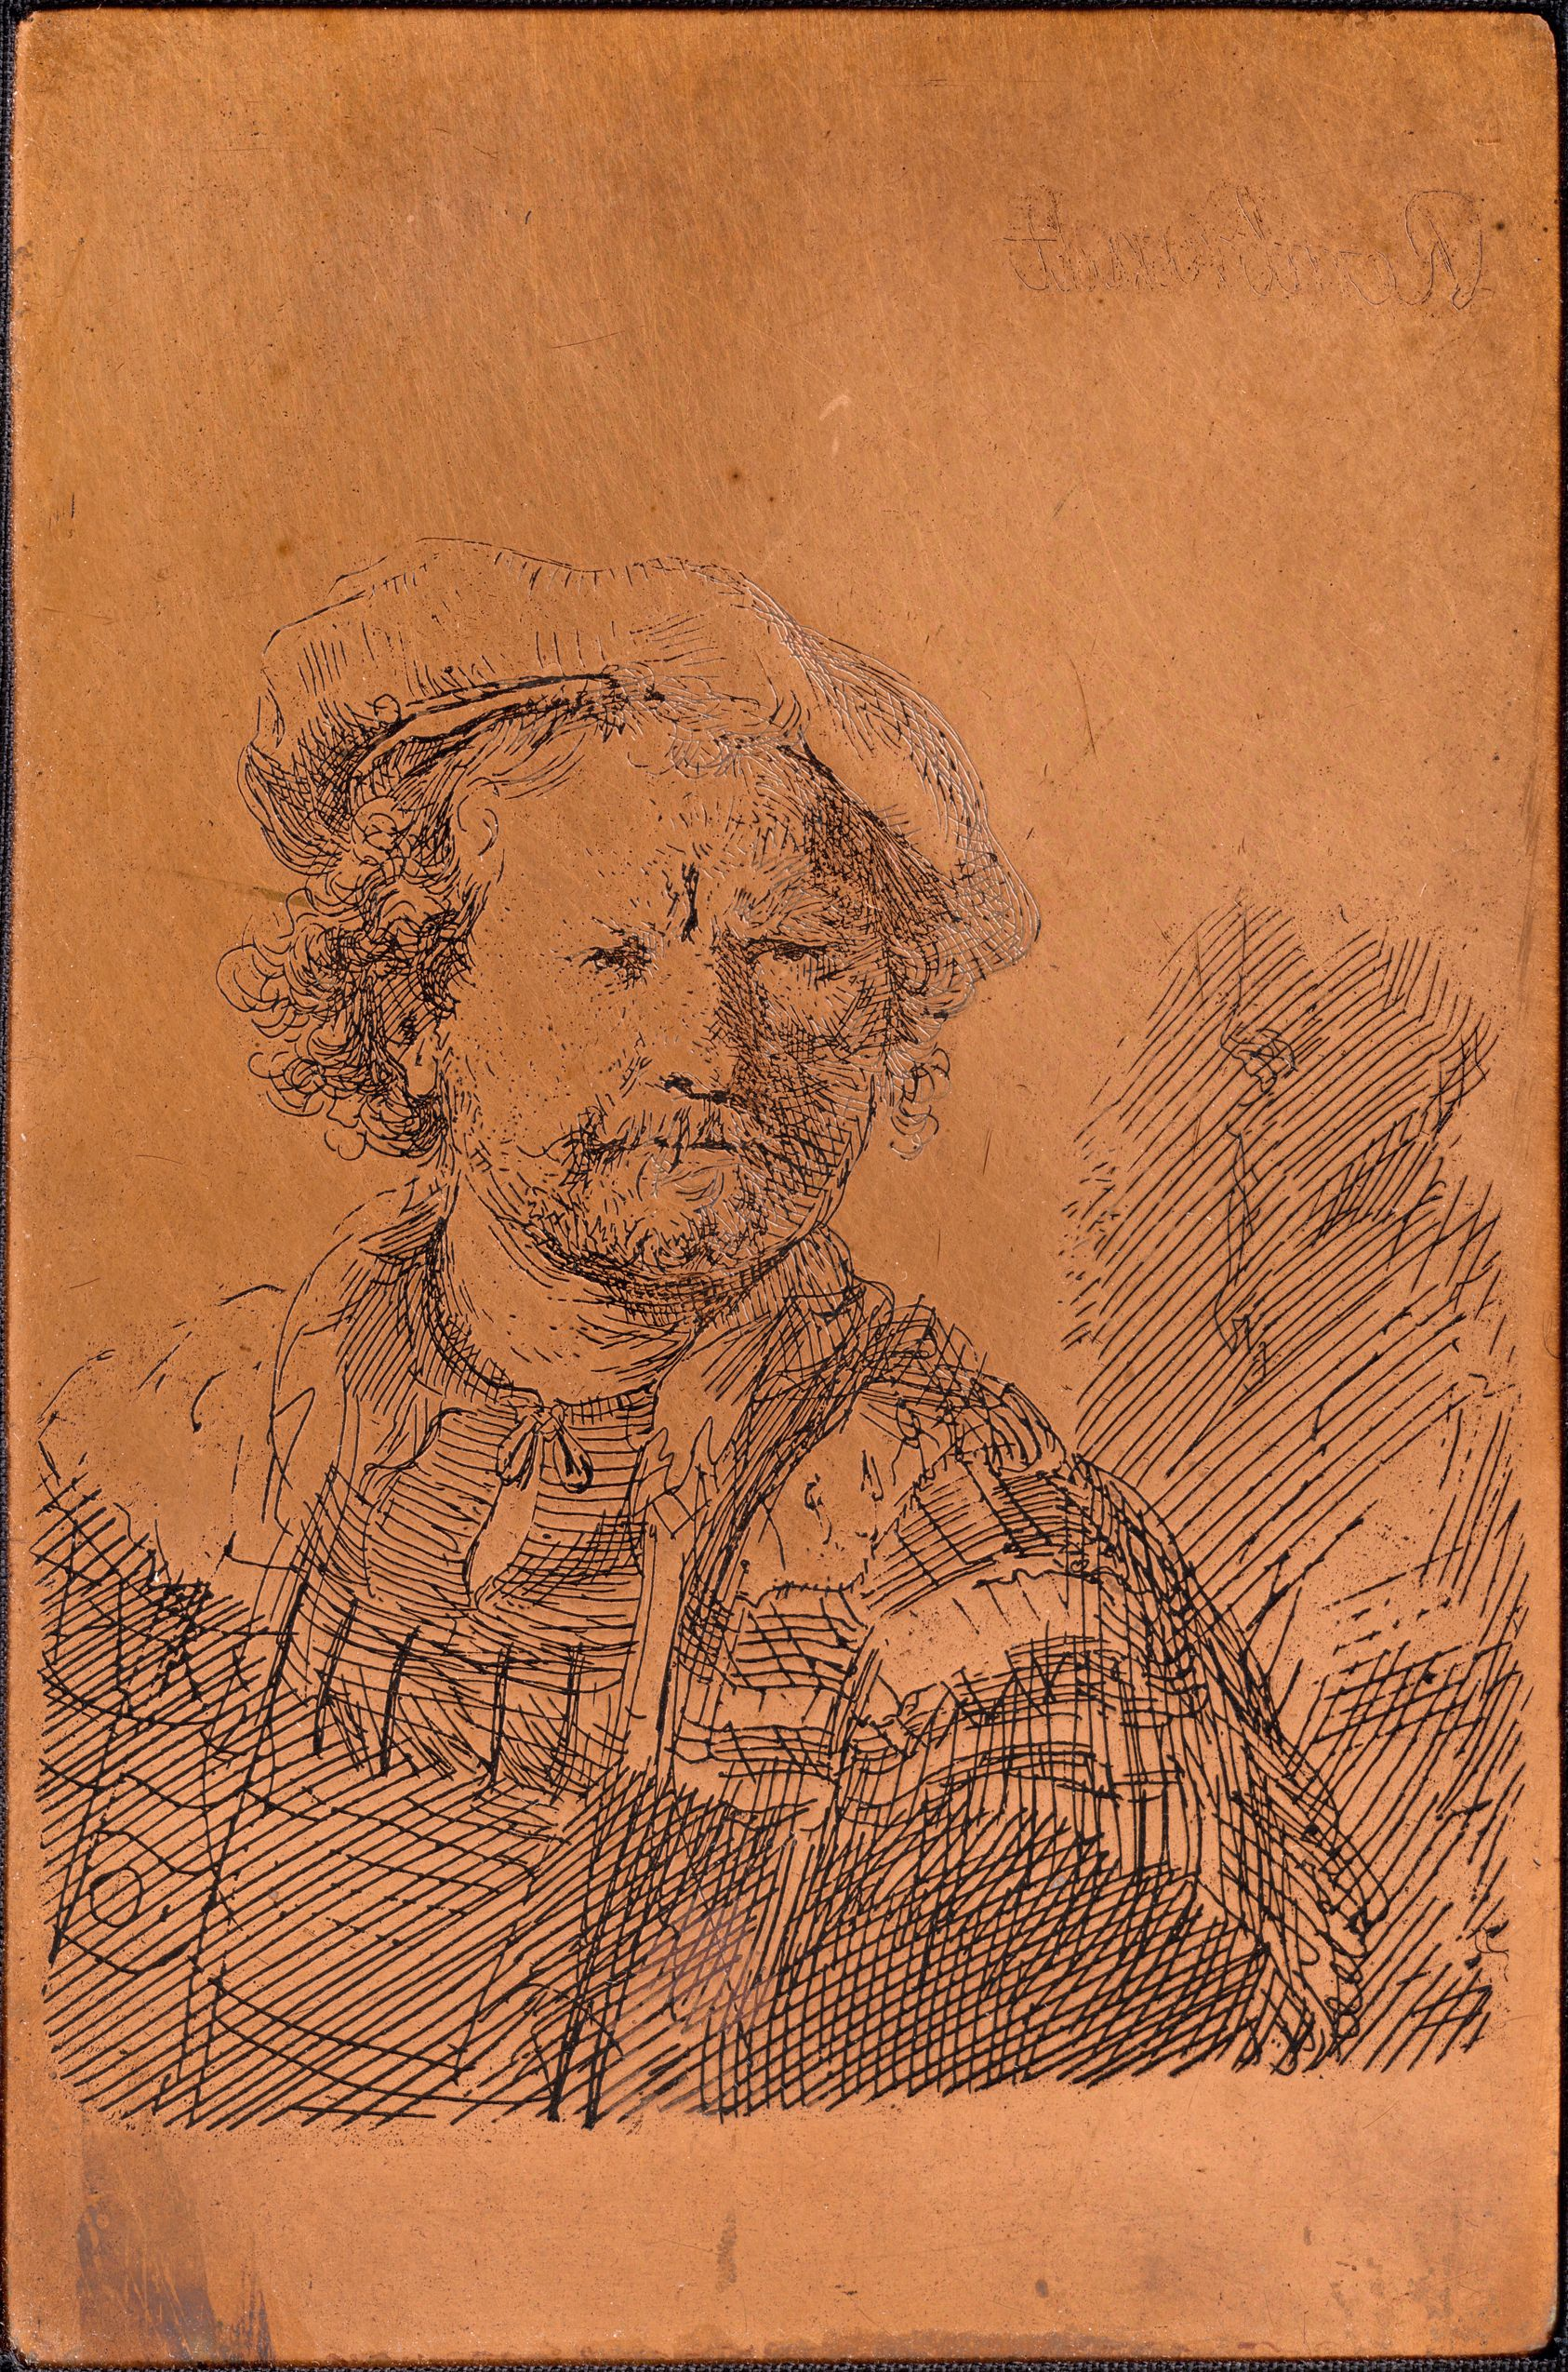 From The Harvard Art Museums Collections Copper Plate